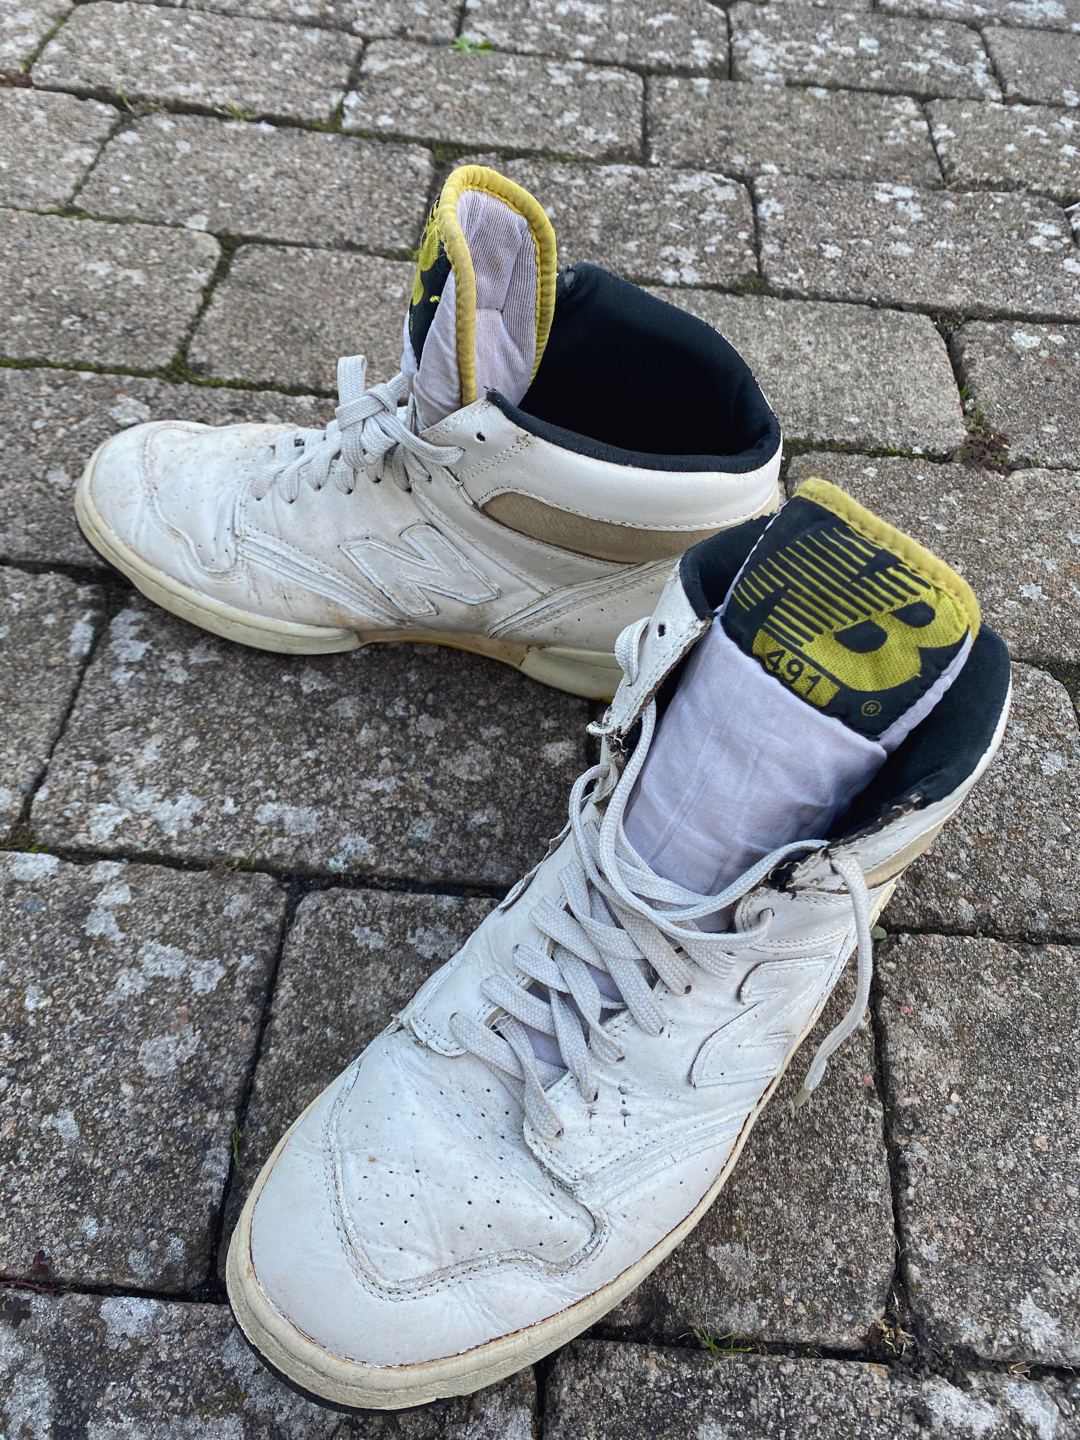 Vintage 80s New Balance Sneakers